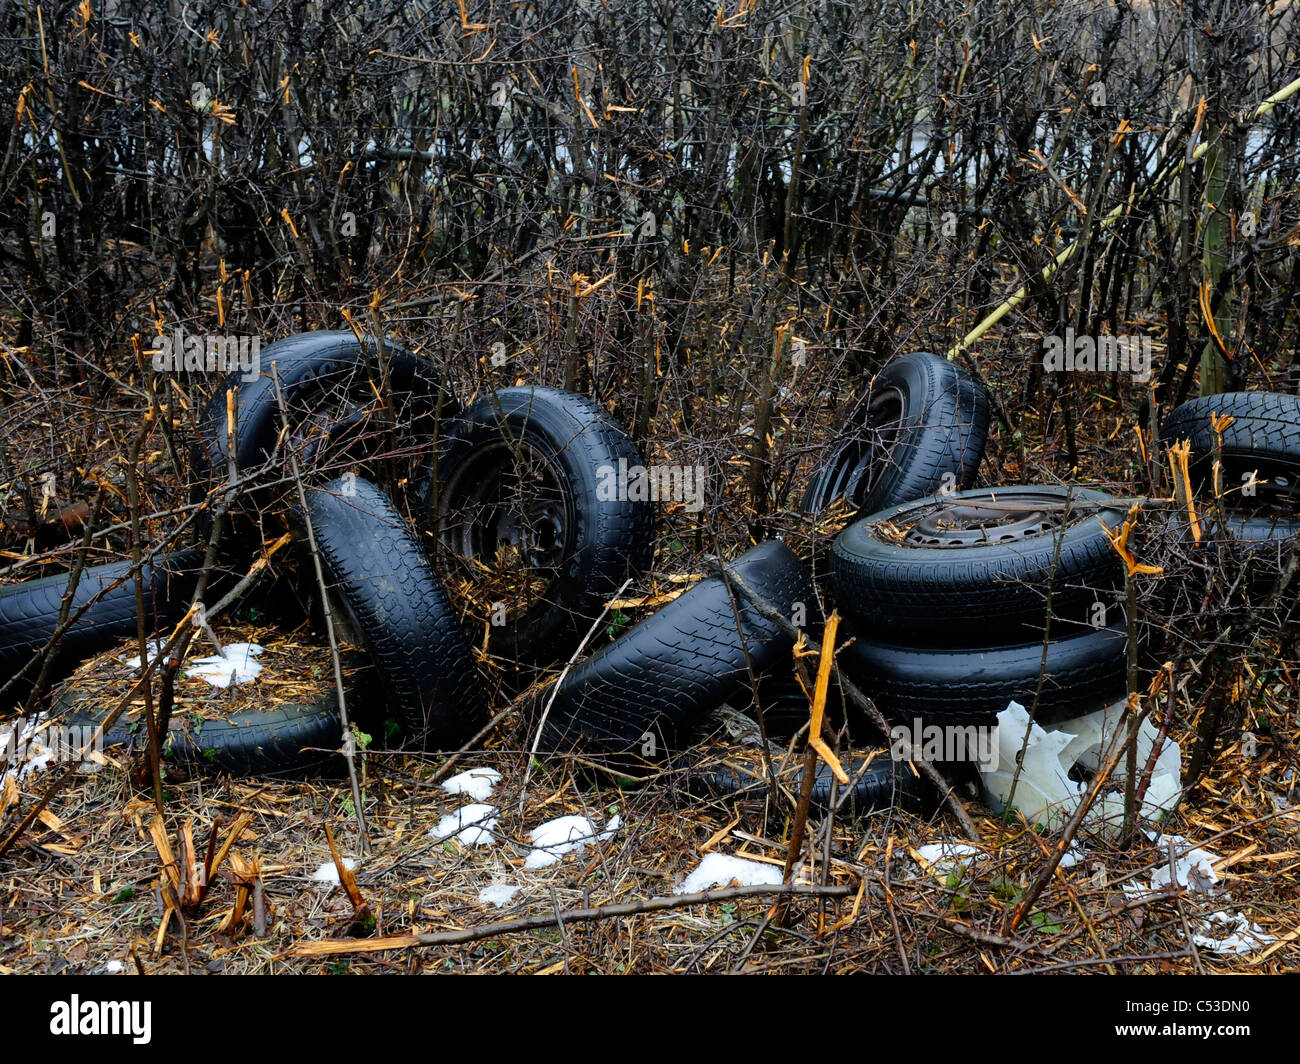 Old tyres illegally dumped on farmland, in the countryside. - Stock Image